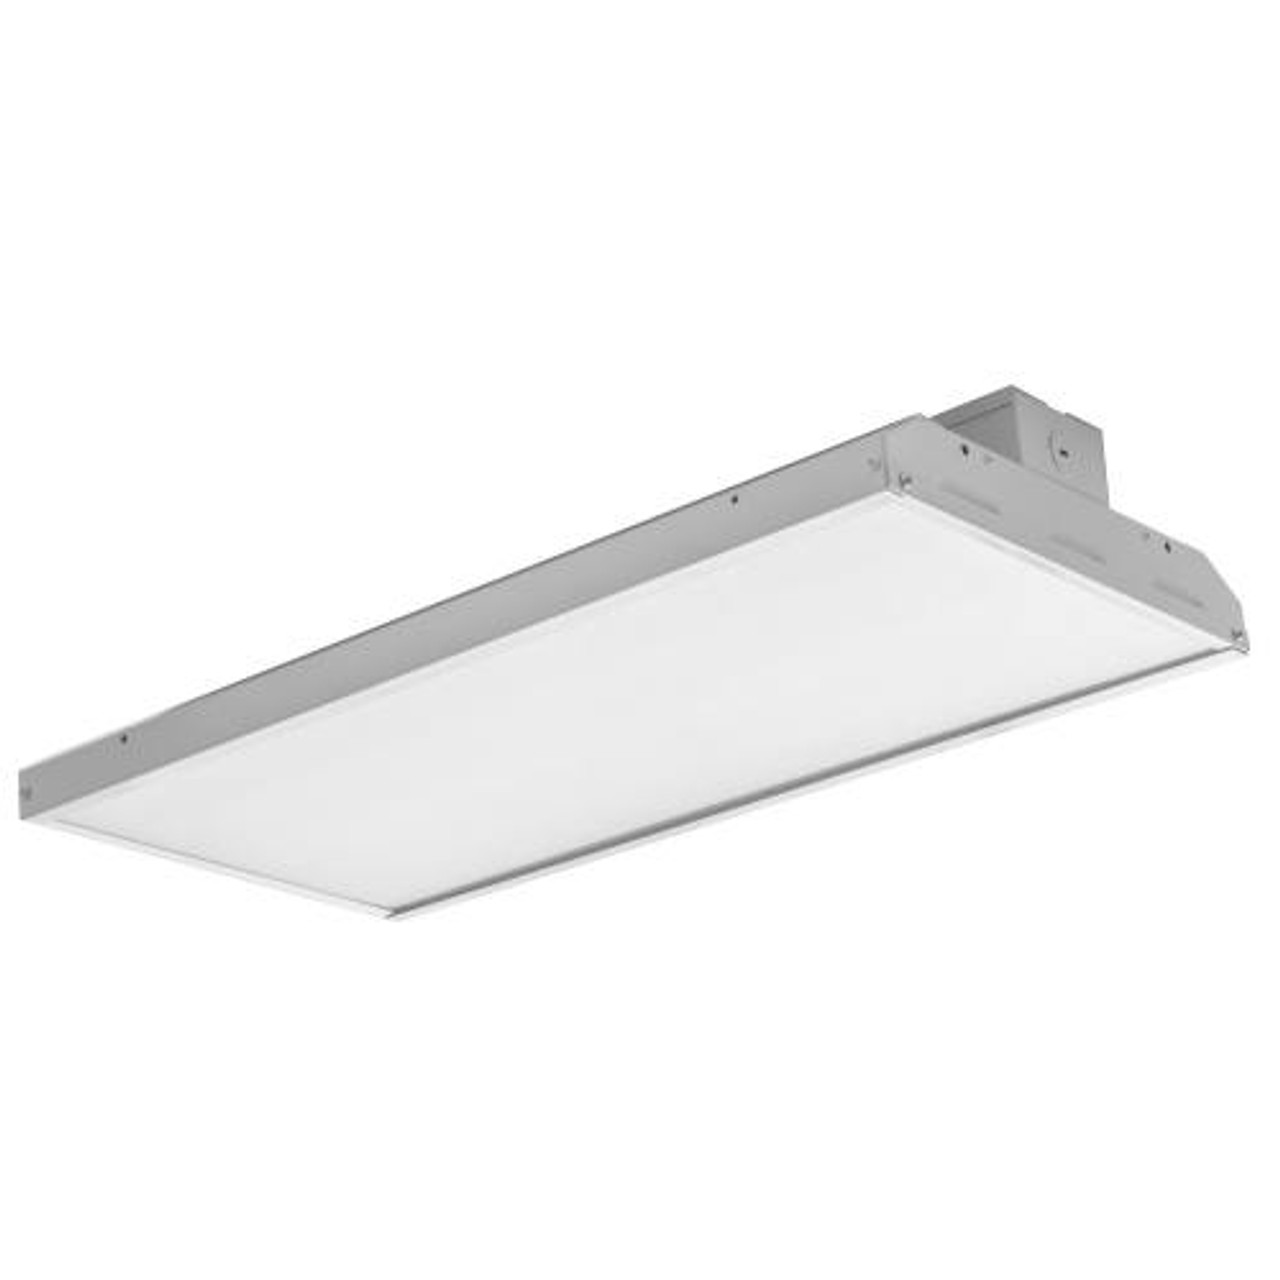 Slim Linear LED High Bay, 180 Watt, 24603 lumens, 120-277V, UL and DLC Listed, Dimmable - 4K/5K (AL-HBLED180)